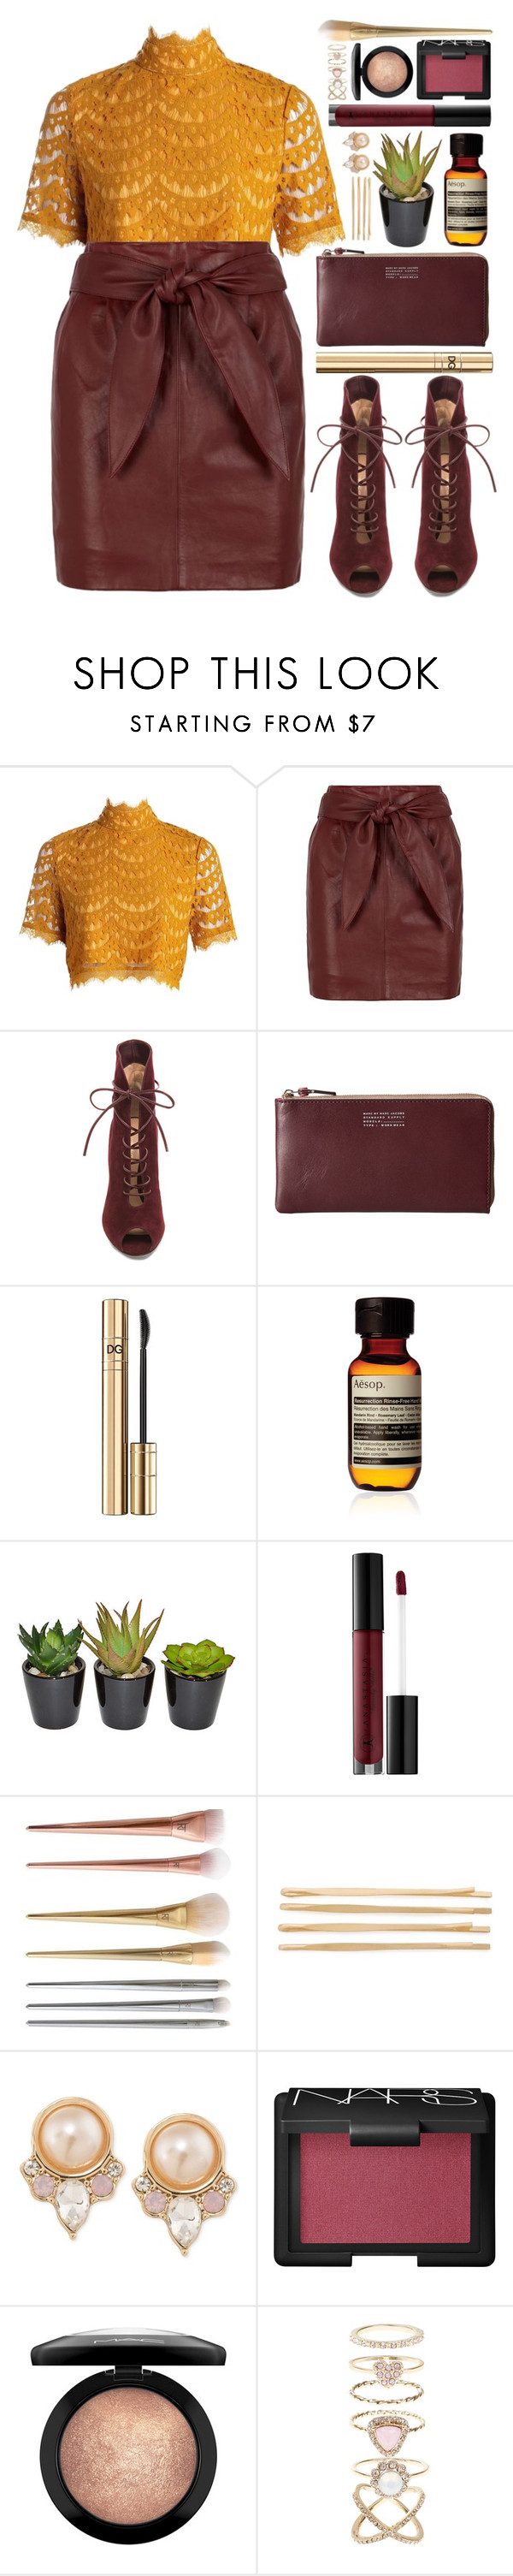 """""""#891 Ophélia"""" by blueberrylexie ❤ liked on Polyvore featuring Boohoo, Reiss, Gianvito Rossi, Marc by Marc Jacobs, D&G, Aesop, The French Bee, Anastasia Beverly Hills, Cara and Carolee"""